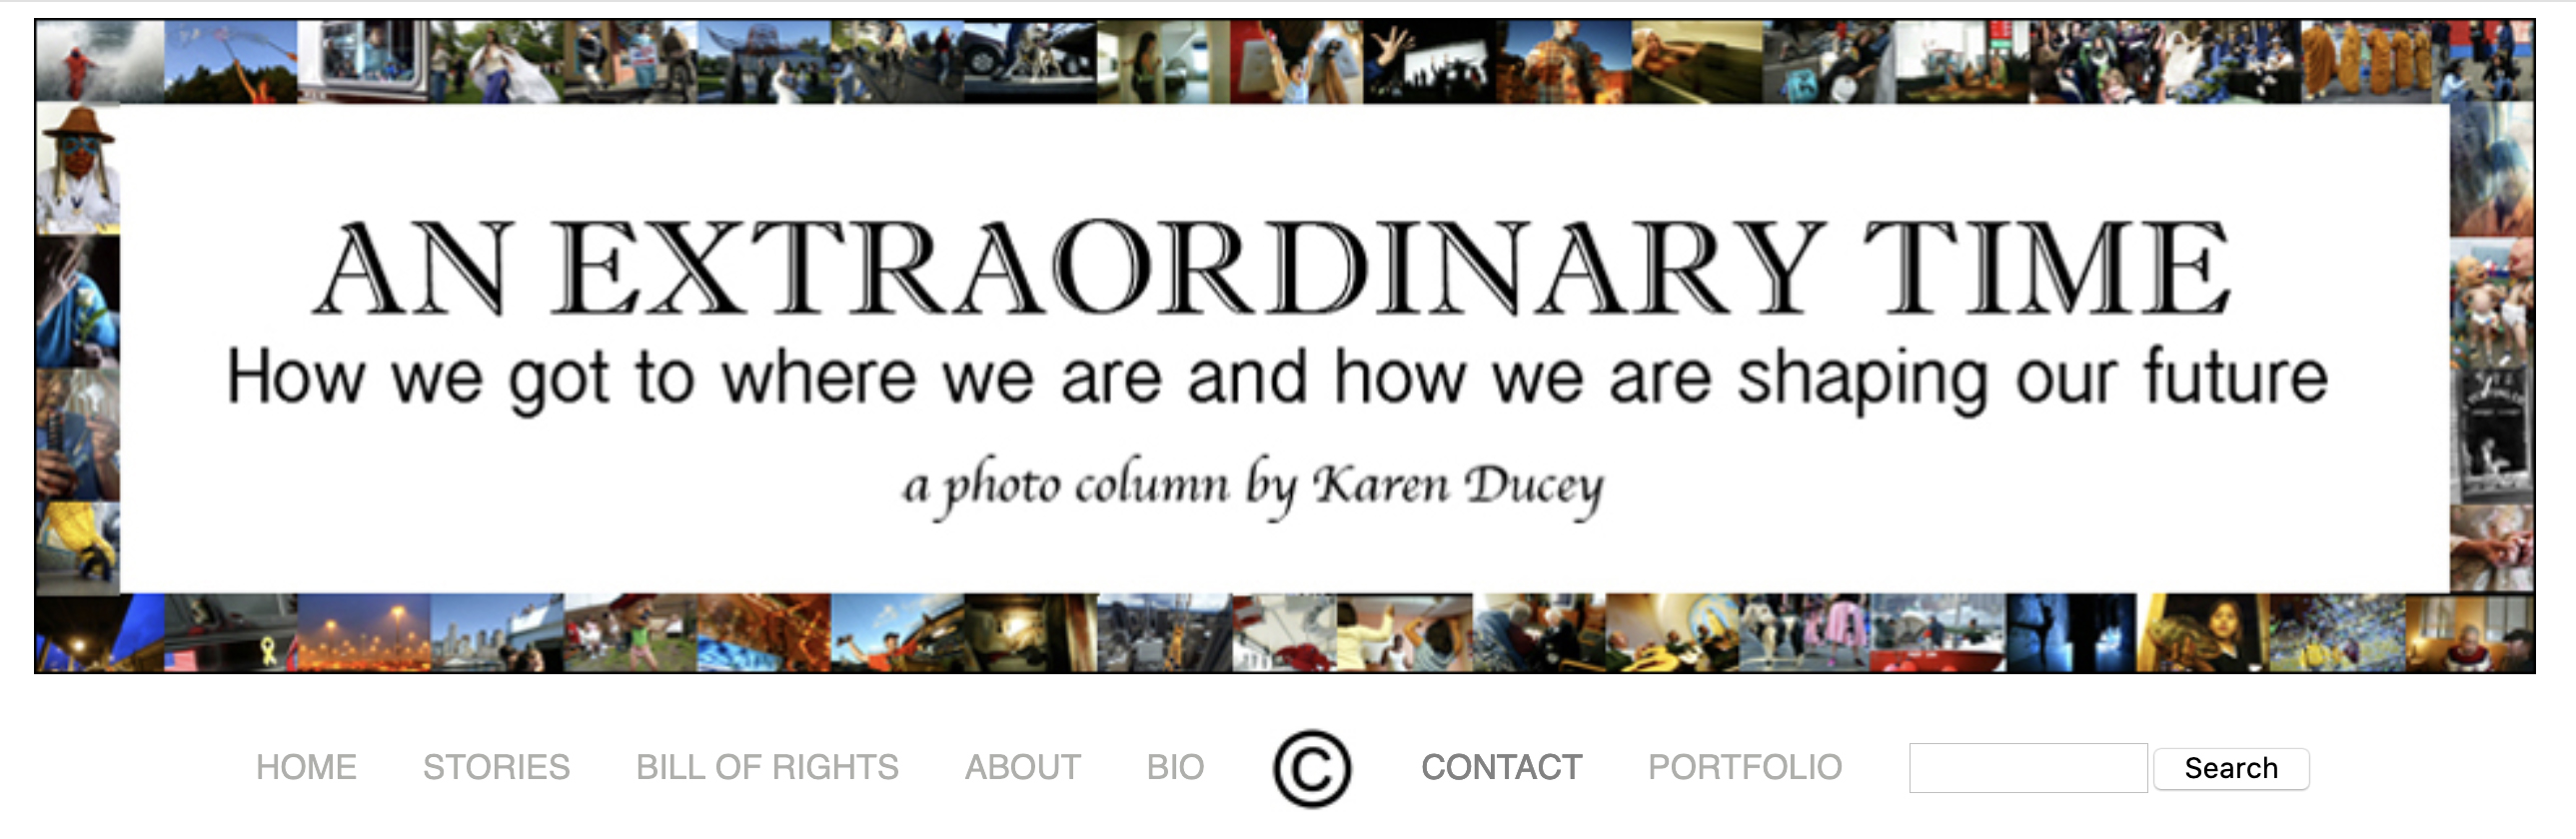 """An Extraordinary Time is a photo column I produced once a week from 2005-2006. It originally ran in the The Seattle Post-Intelligencer under the heading """"Seattle Perspectives"""". Now it is managed independently online and the site is under redesign to accompany a work in progress illustrating the Bill Of Rights and the issues surrounding it."""